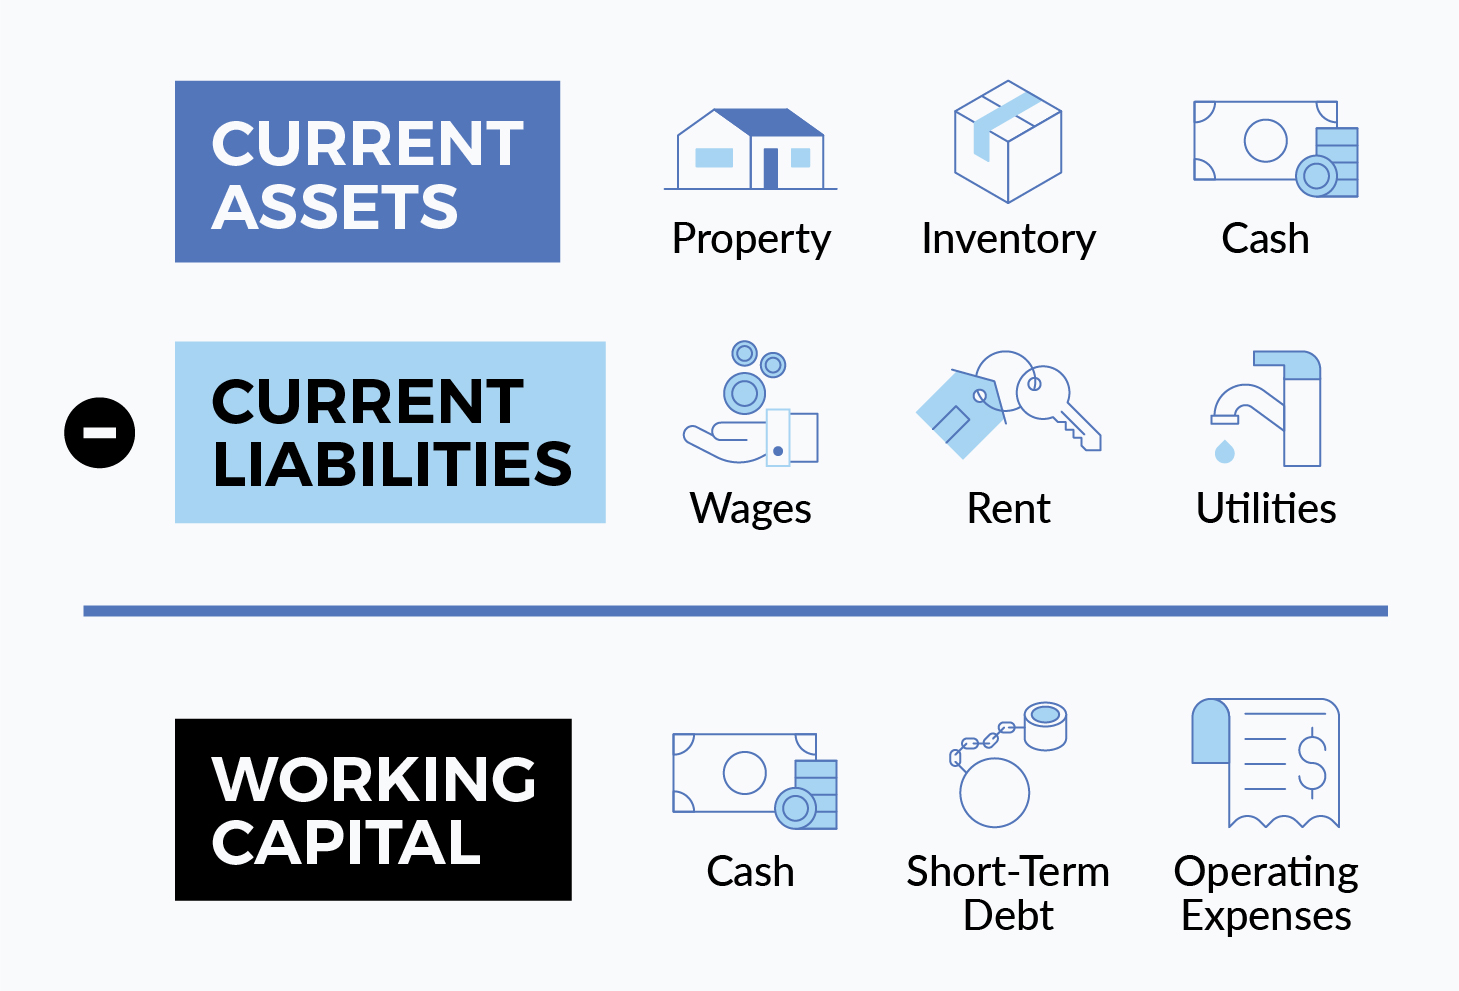 How do you calculate working capital